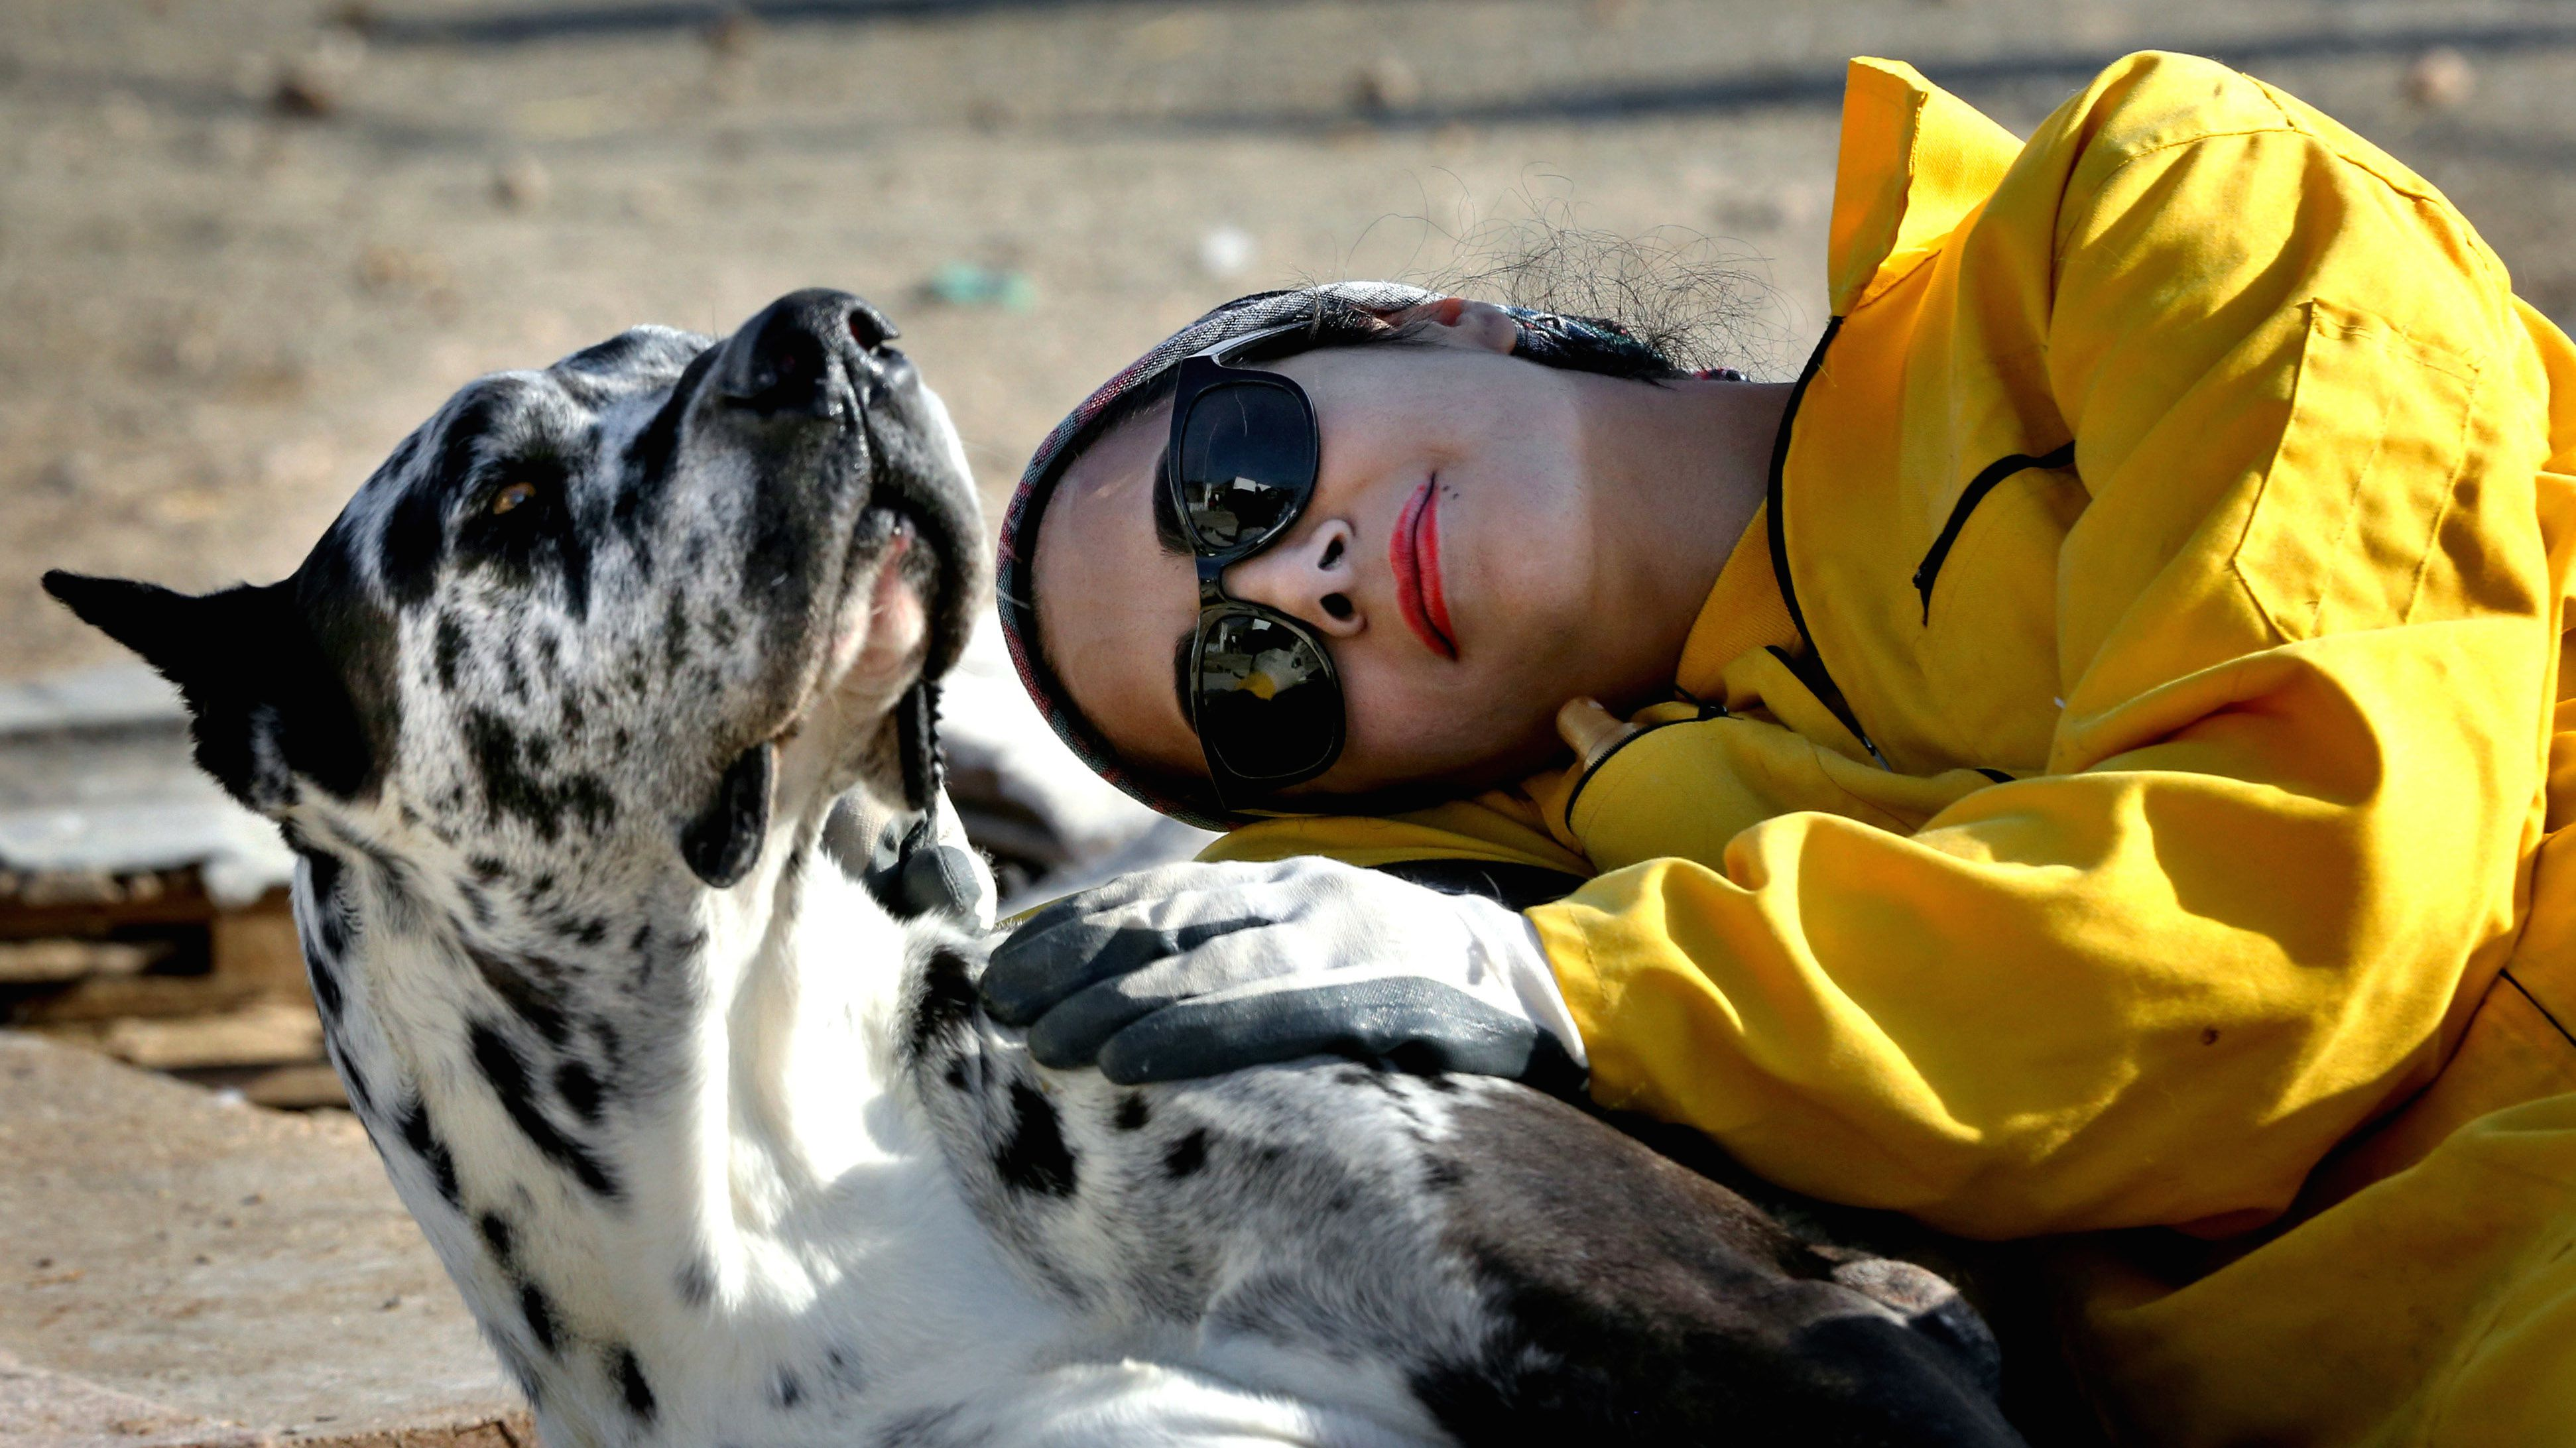 Science proved you and your dog fall in love when you look